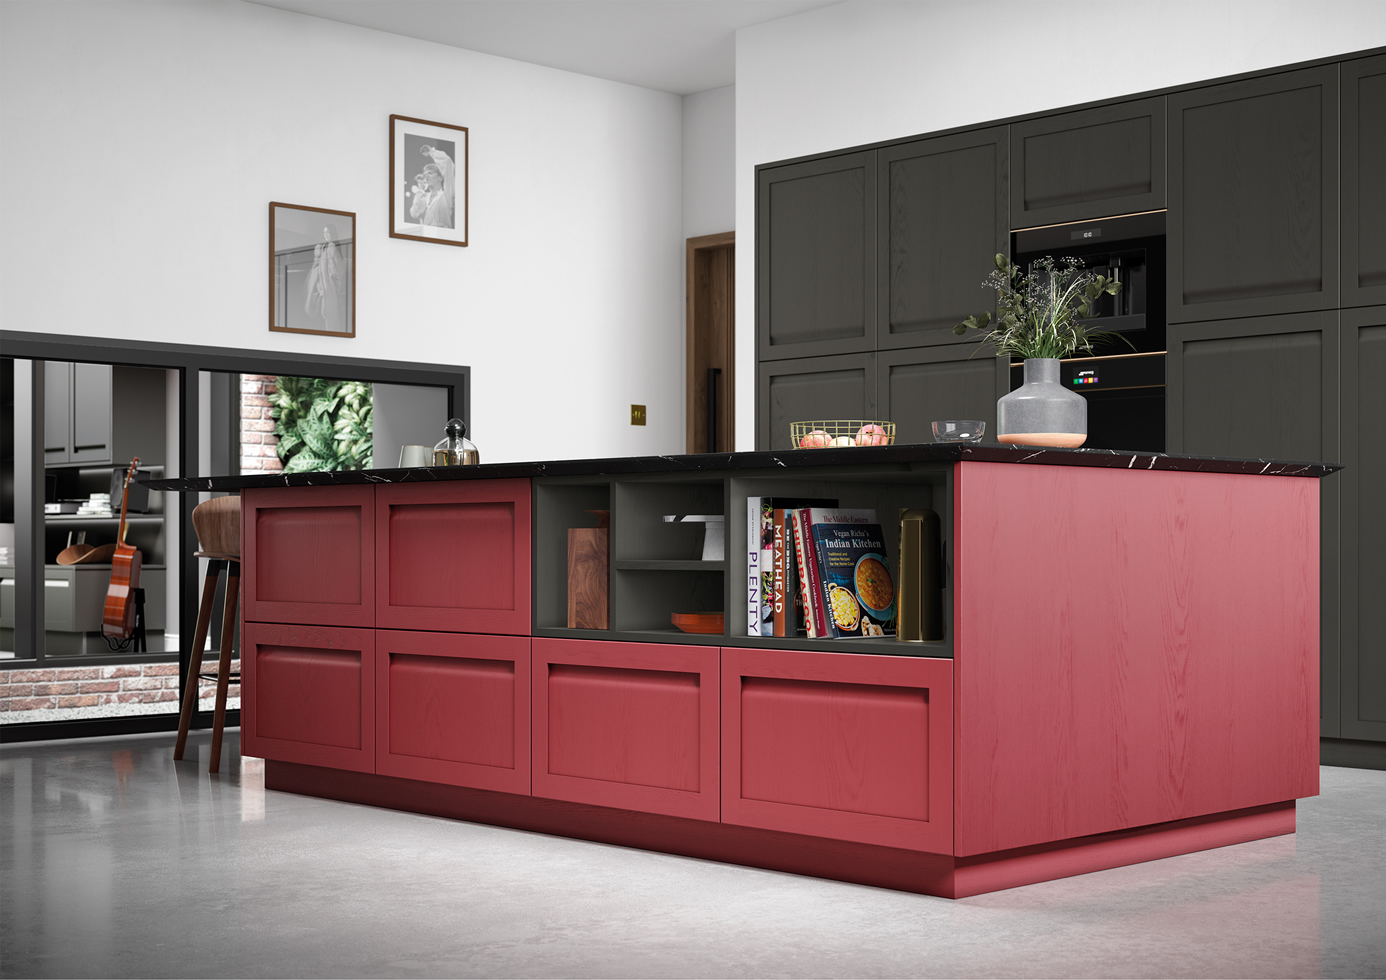 Harborne Graphite and Chicory Red Cameo 2 mya Kitchens Walsall